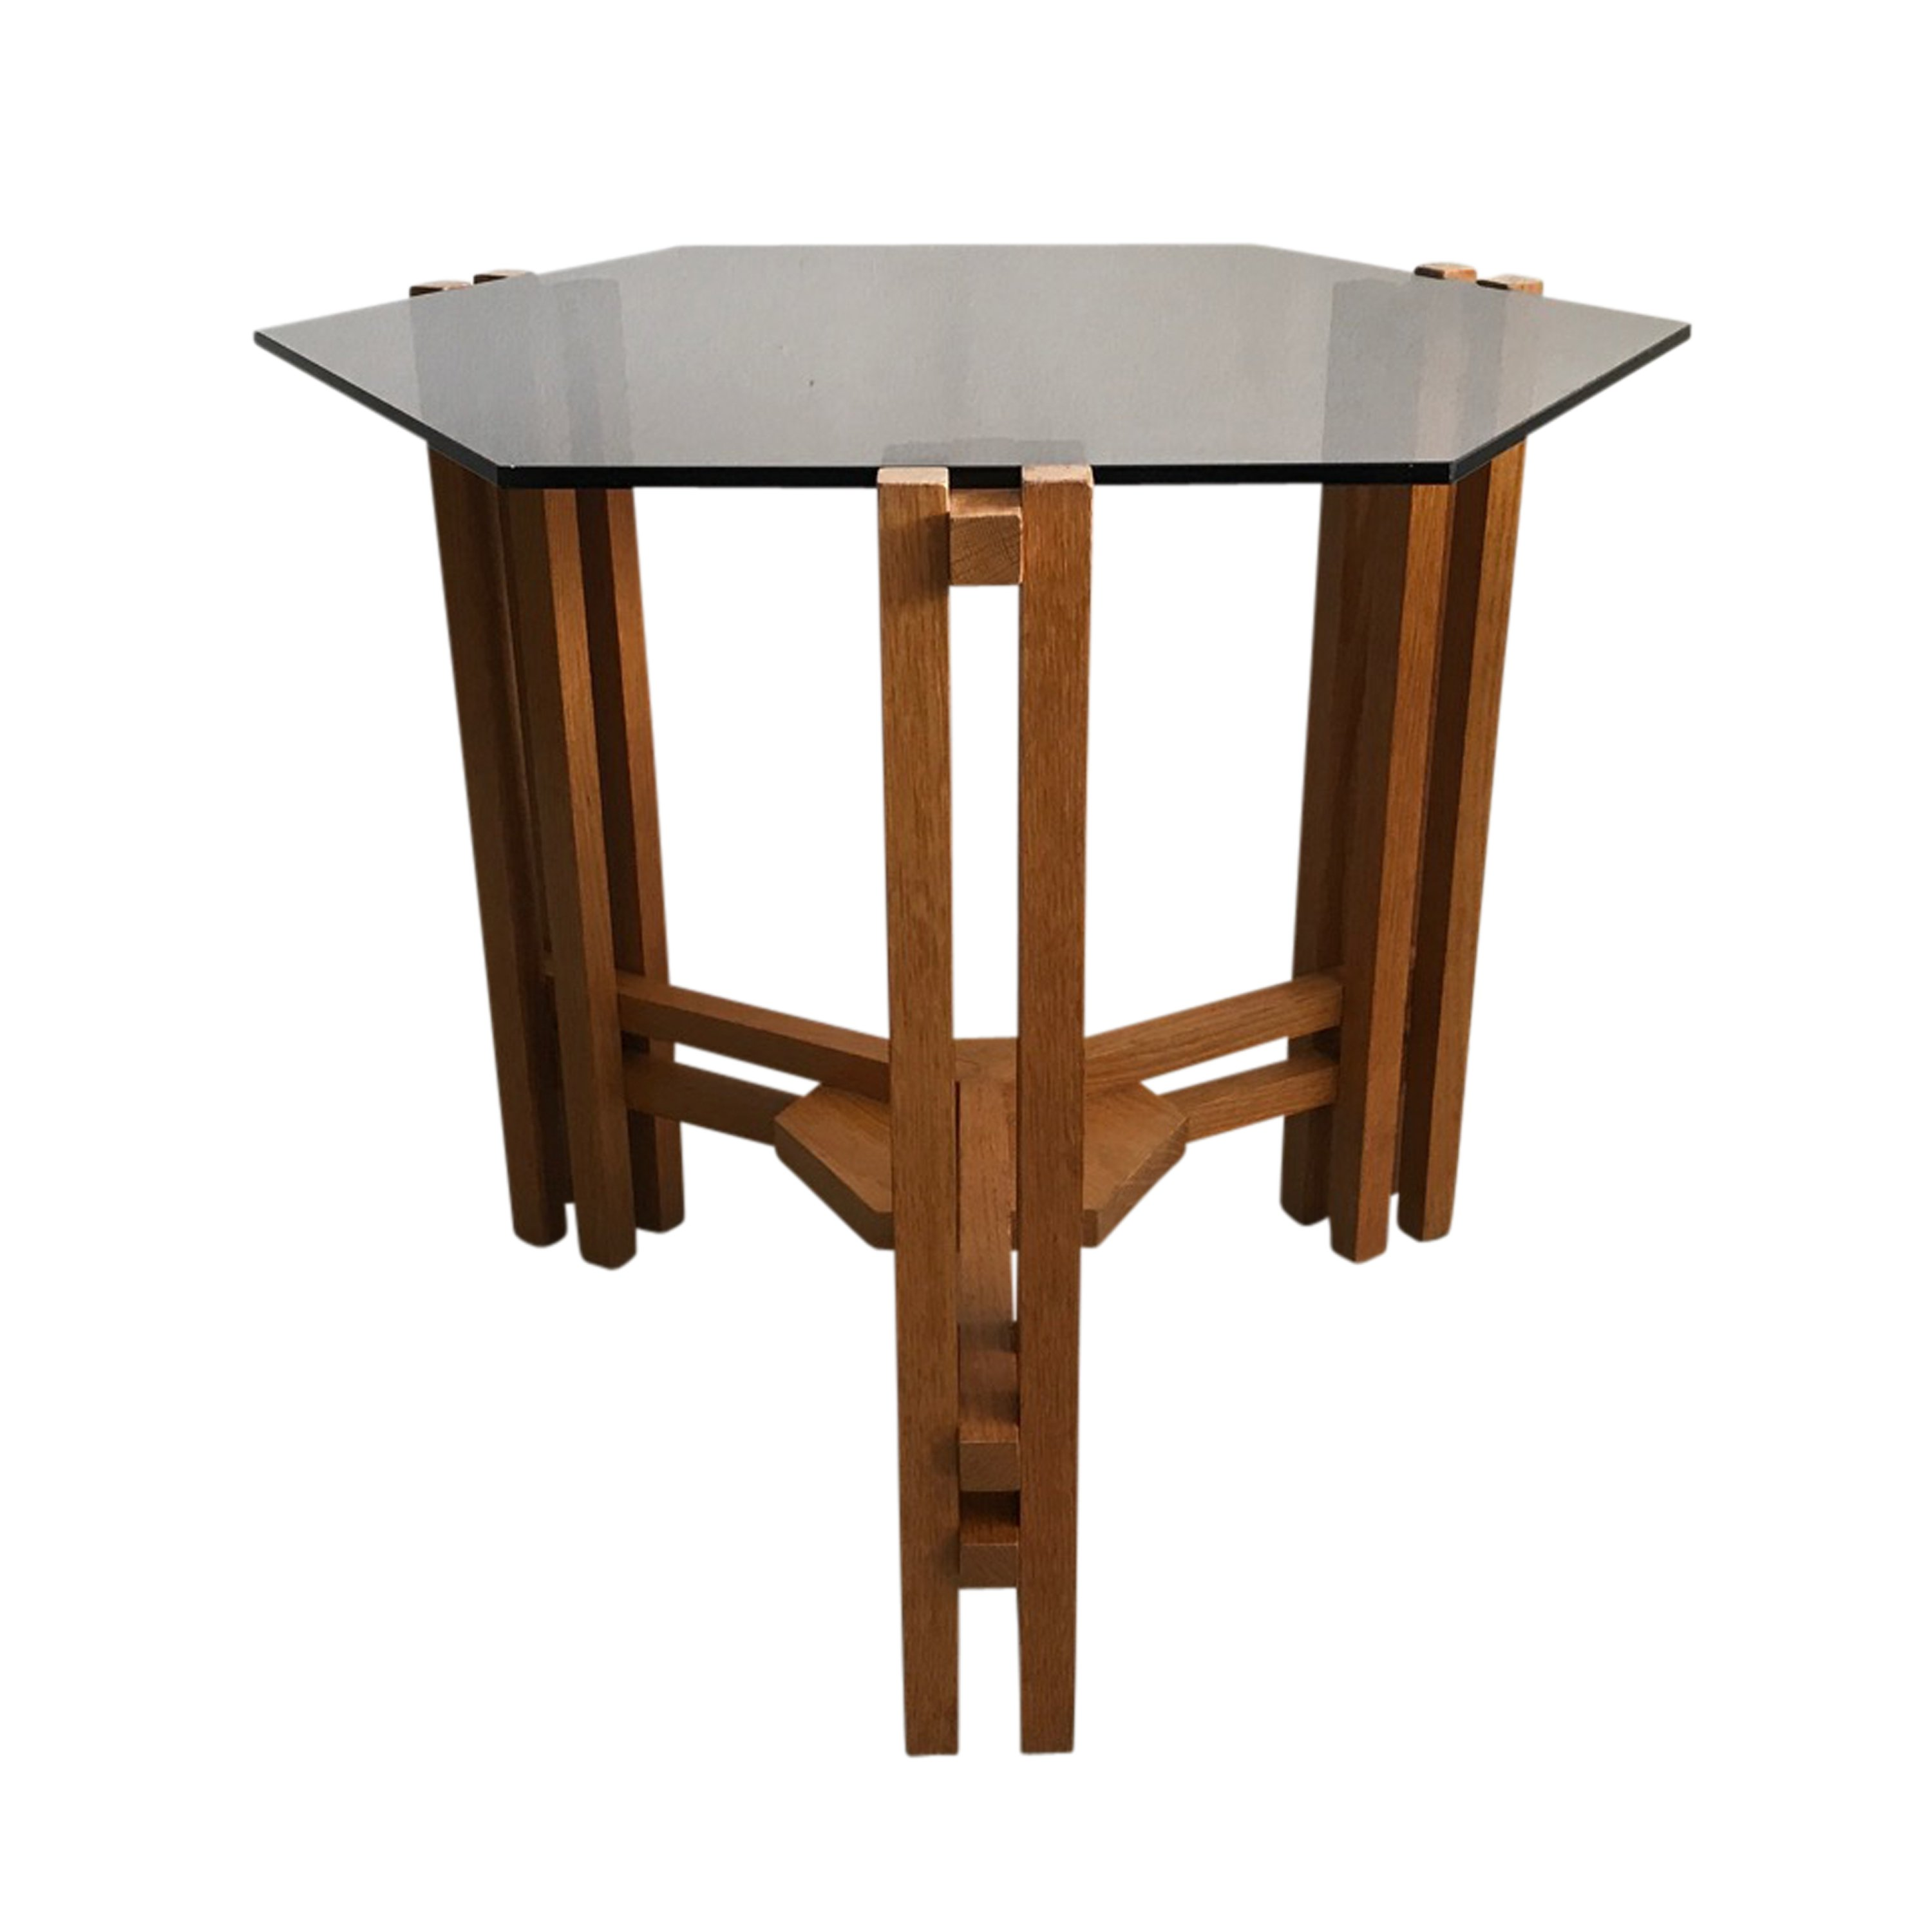 Picture of: Dutch Modernist Abstract Glass Wood Coffee Table 1960s 128597